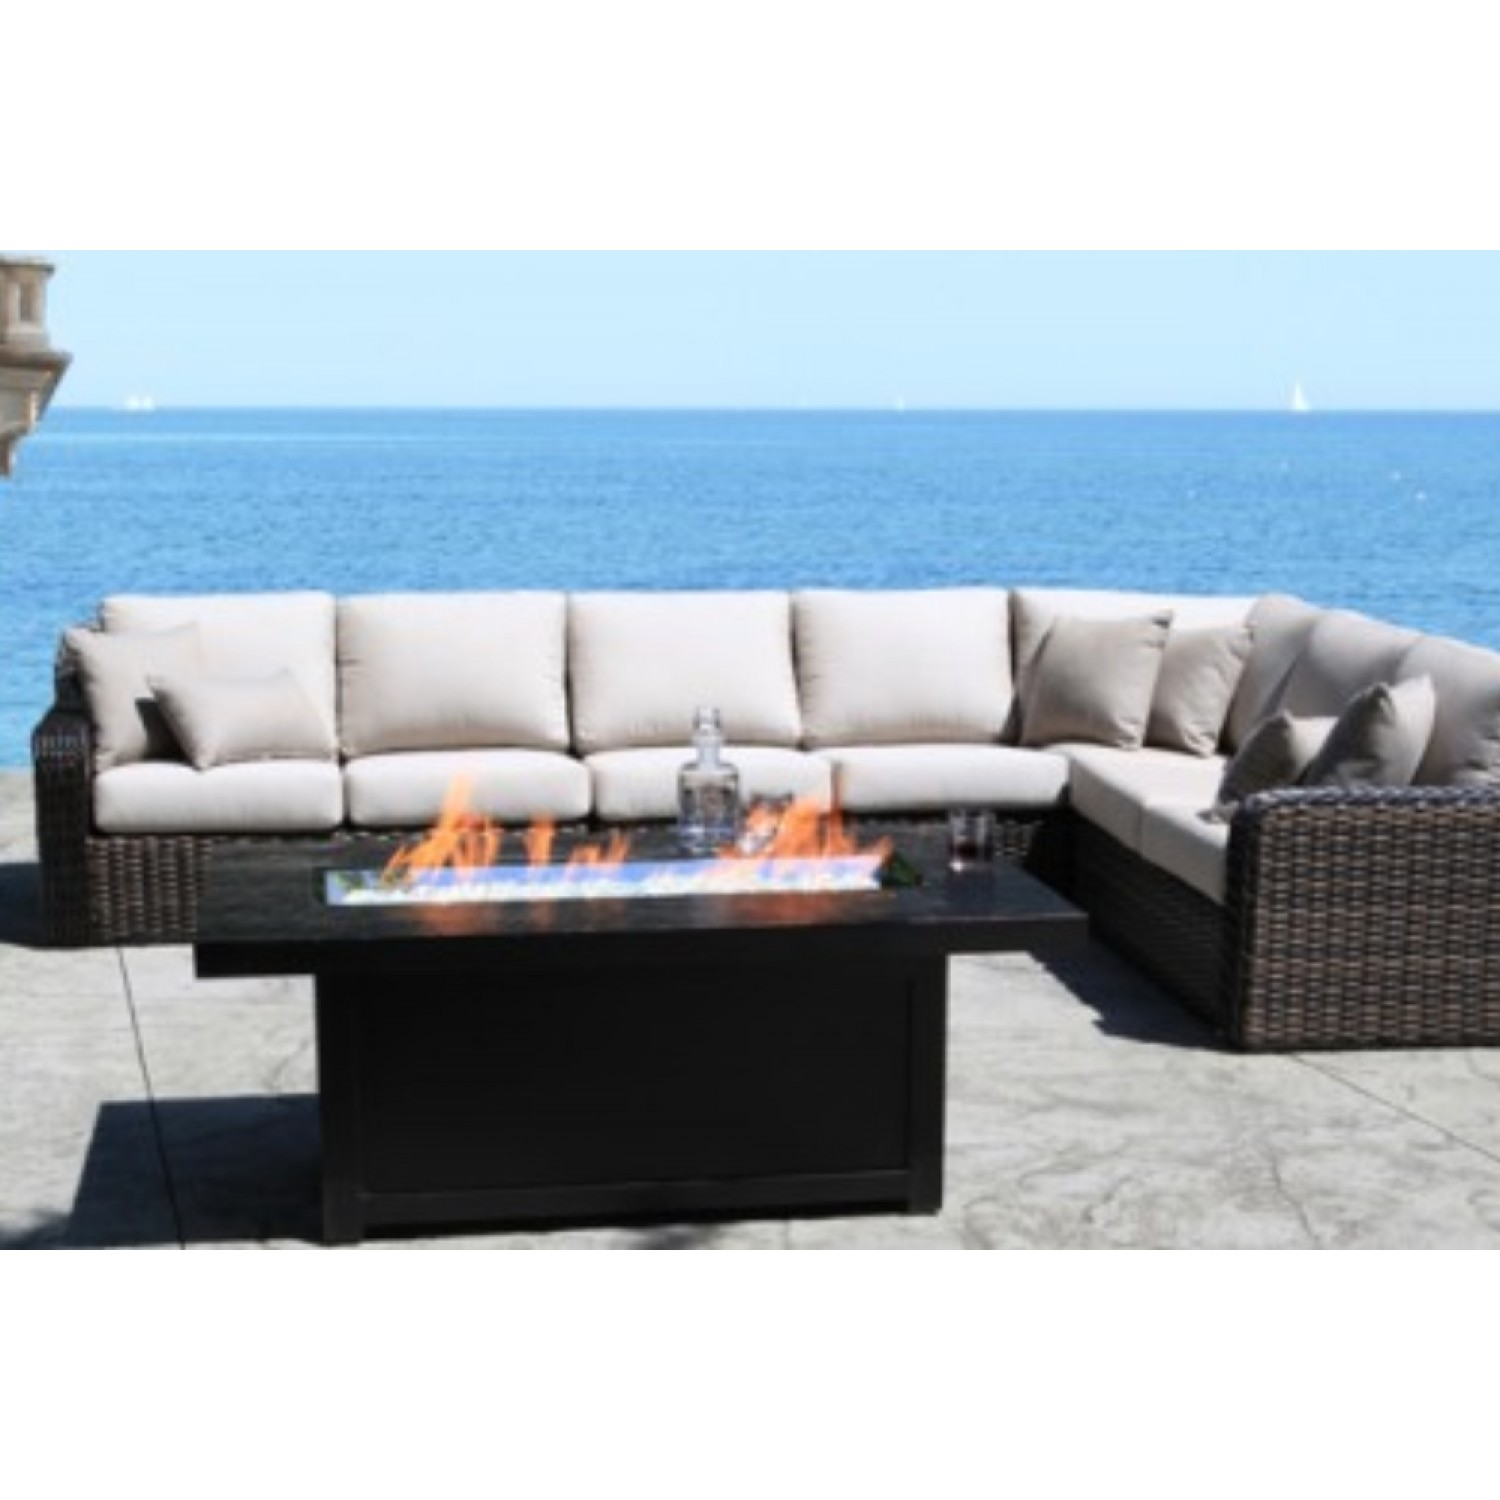 Seafair Outdoor Sectional